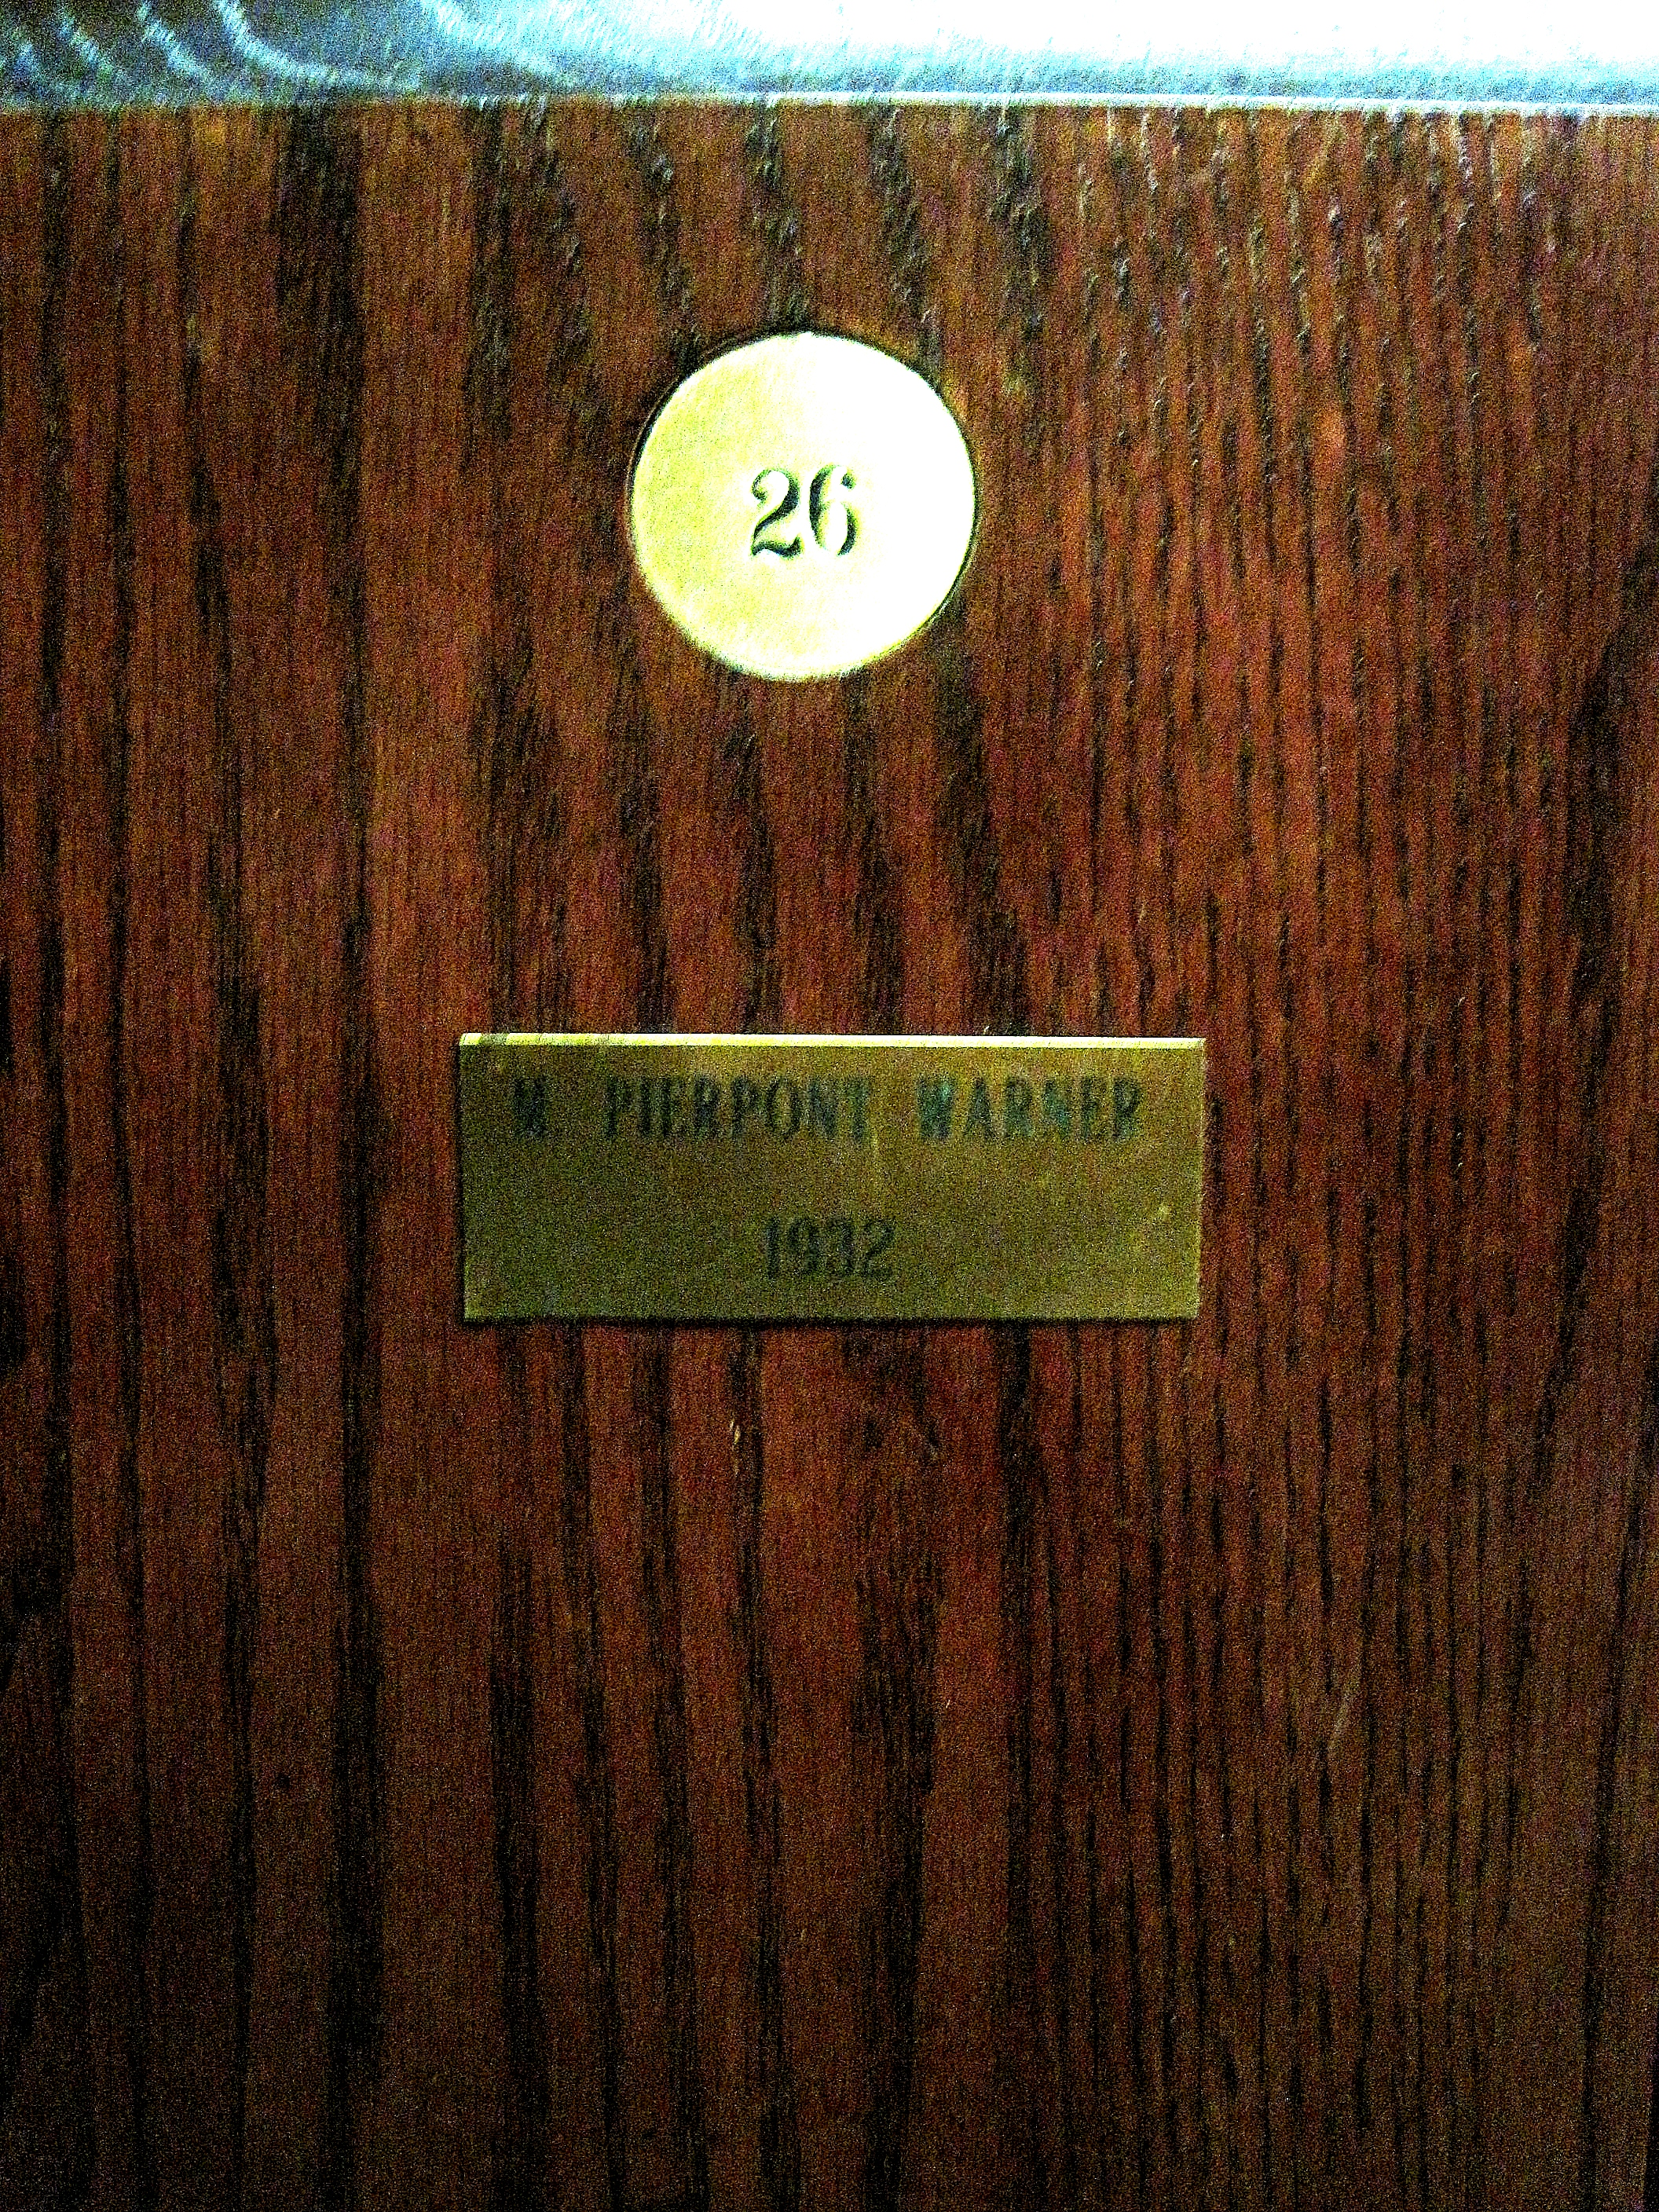 Pipie Warner's locker at the North and South Amateur Champions Locker Room at Pinehurst Resort.